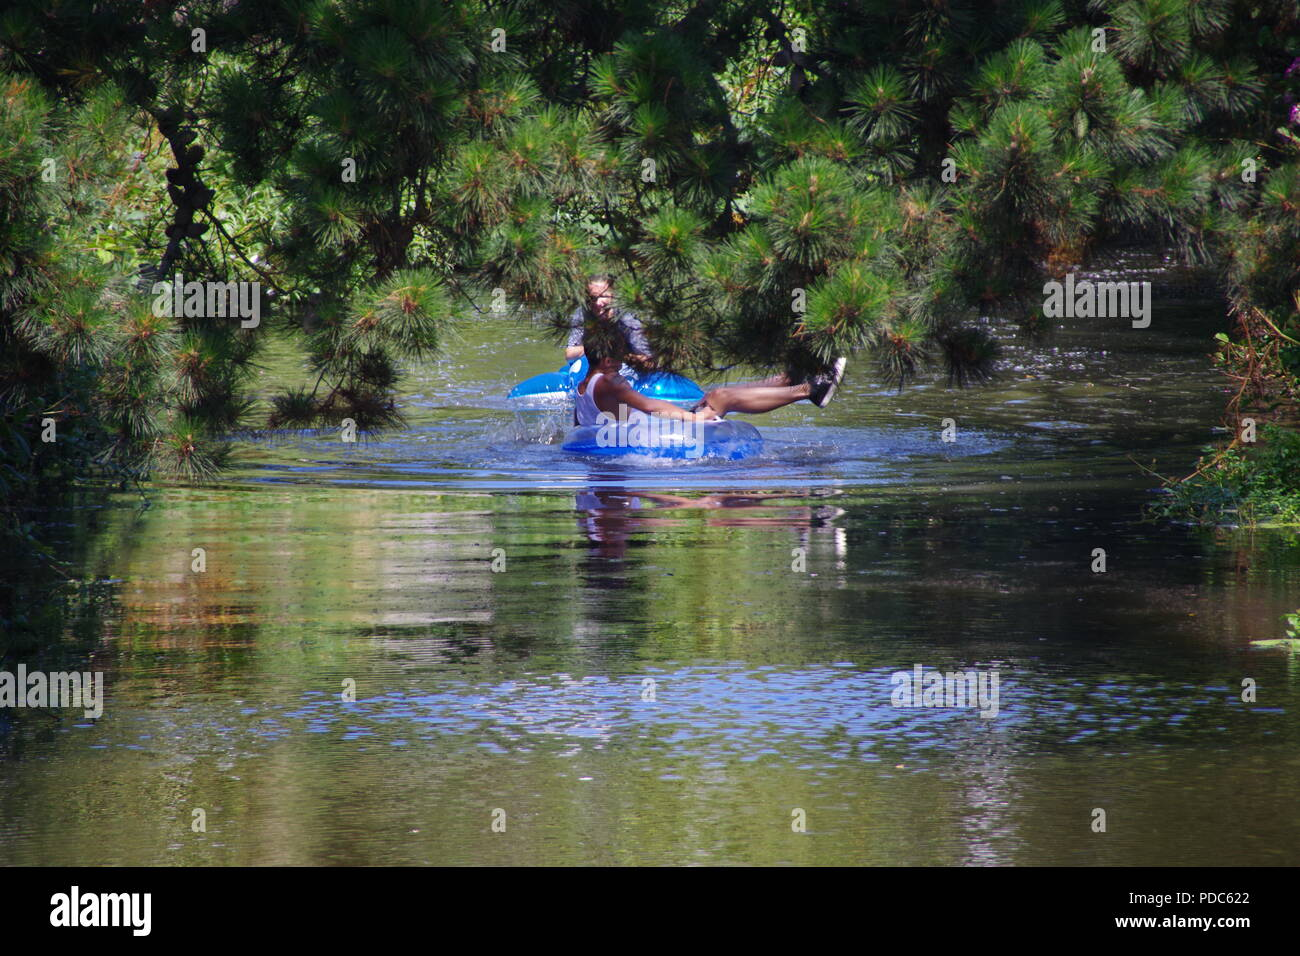 Teenagers on Inflatables, Cooling Off by River Rafting Down the River Sid on a Hot Summers Day. East Devon, UK. August, 2018. - Stock Image